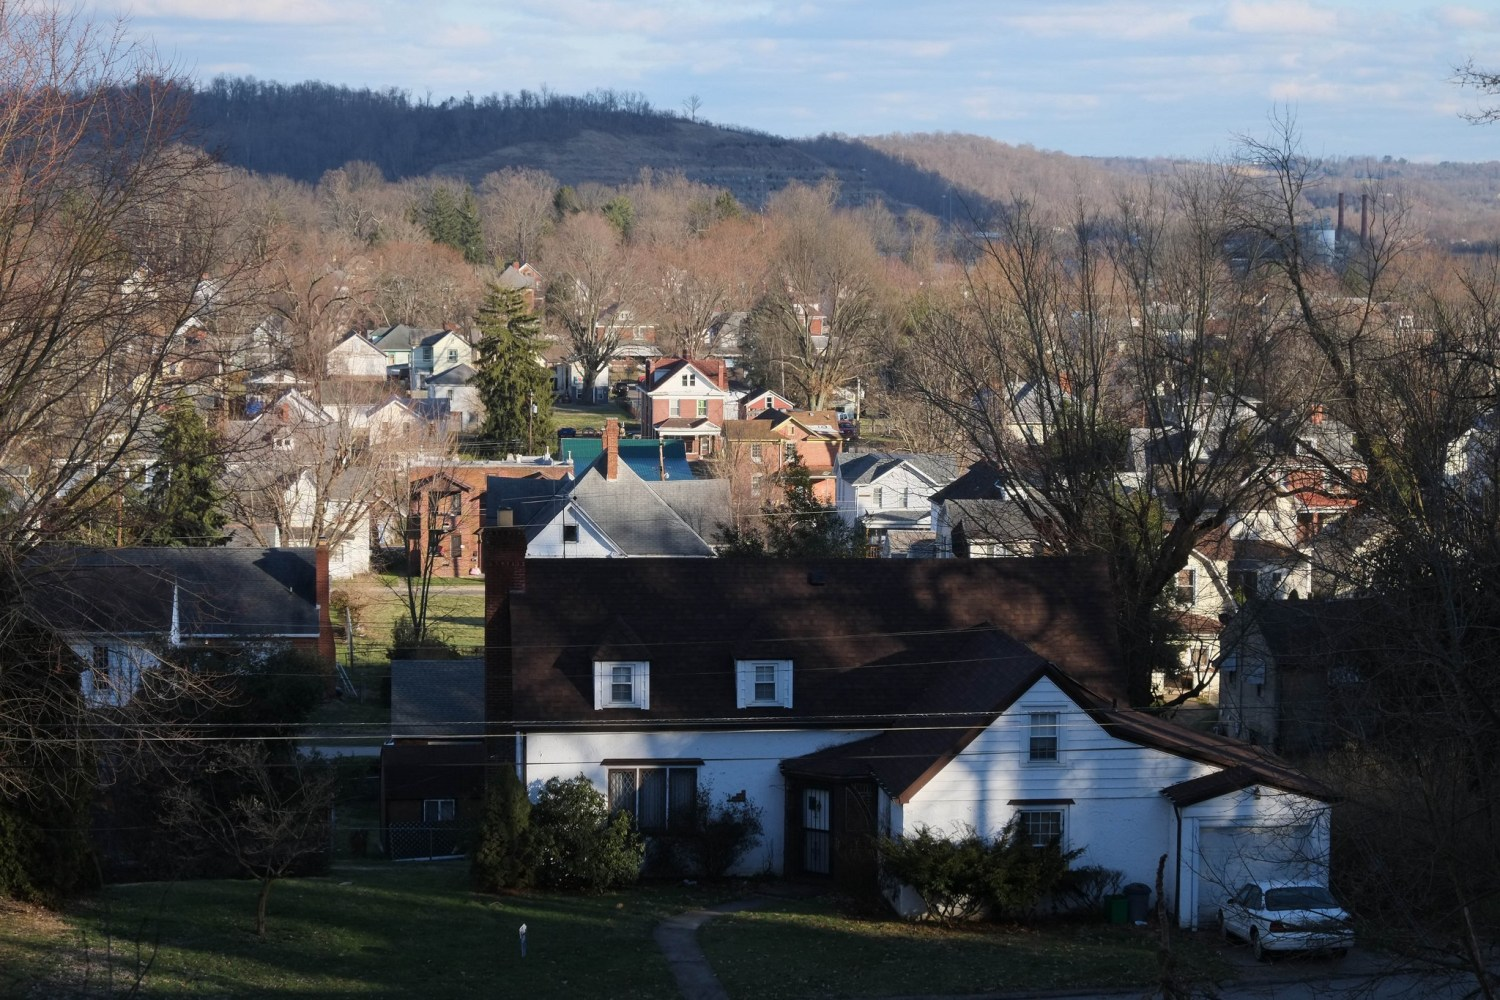 Drinking water in Parkersburg, West Virginia, was contaminated for decades by DuPont's Washington Works chemical plant, which produced a compound called PFOA that has water-repellent properties.